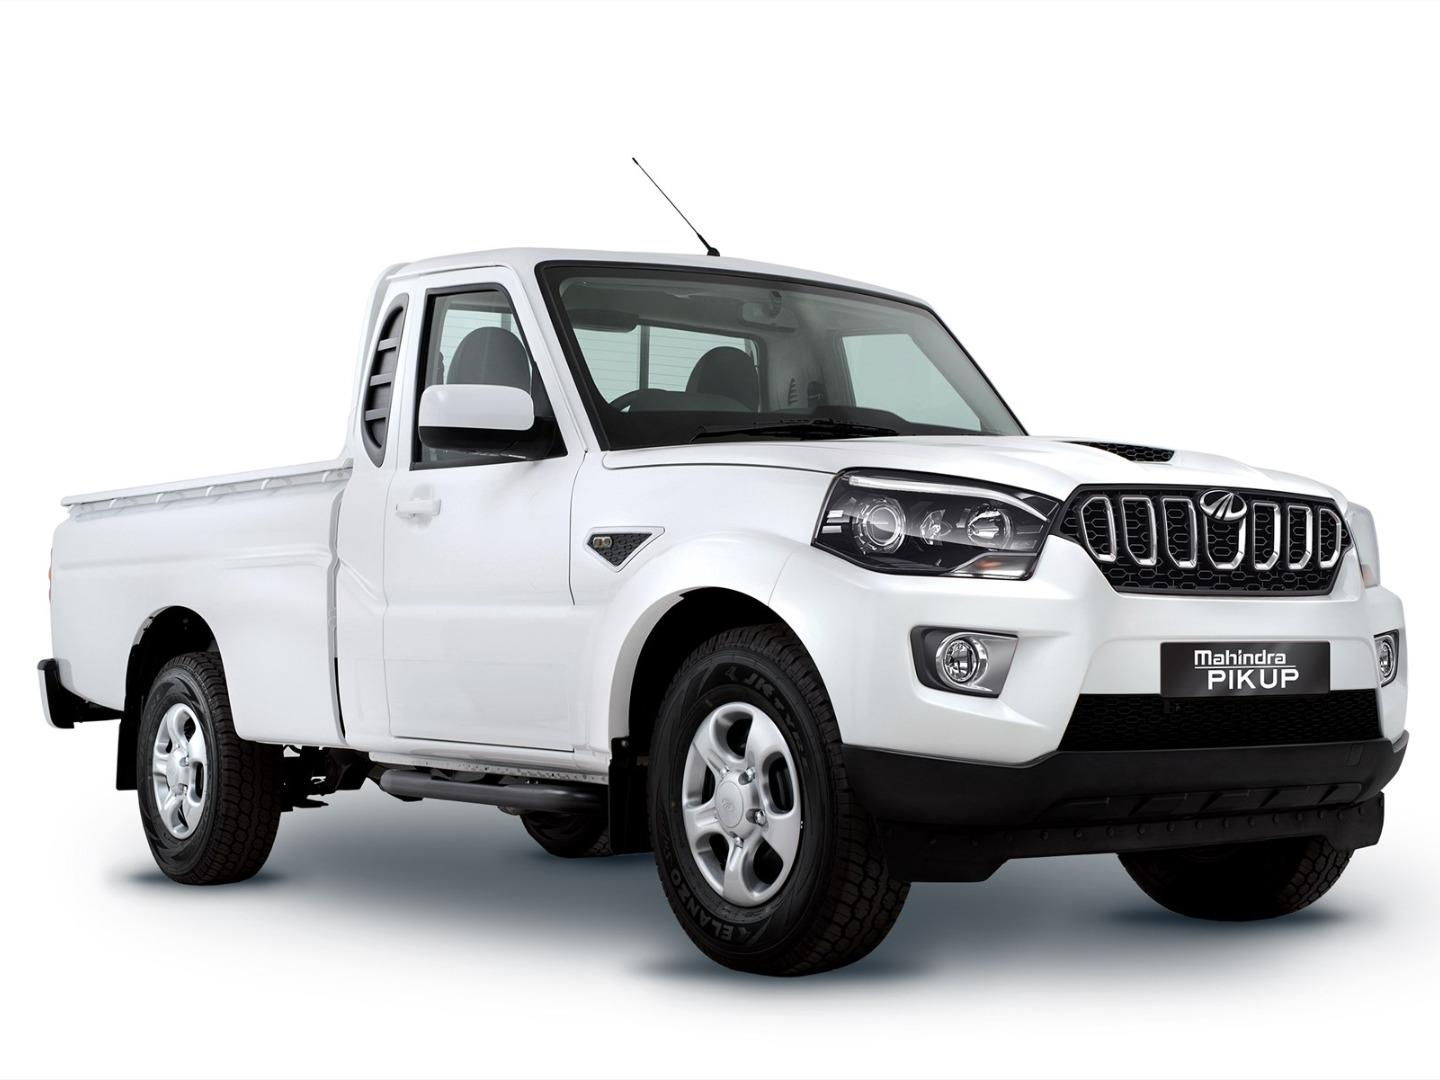 2020 Mahindra Pik Up 2.2CRDe S6- Picture 1